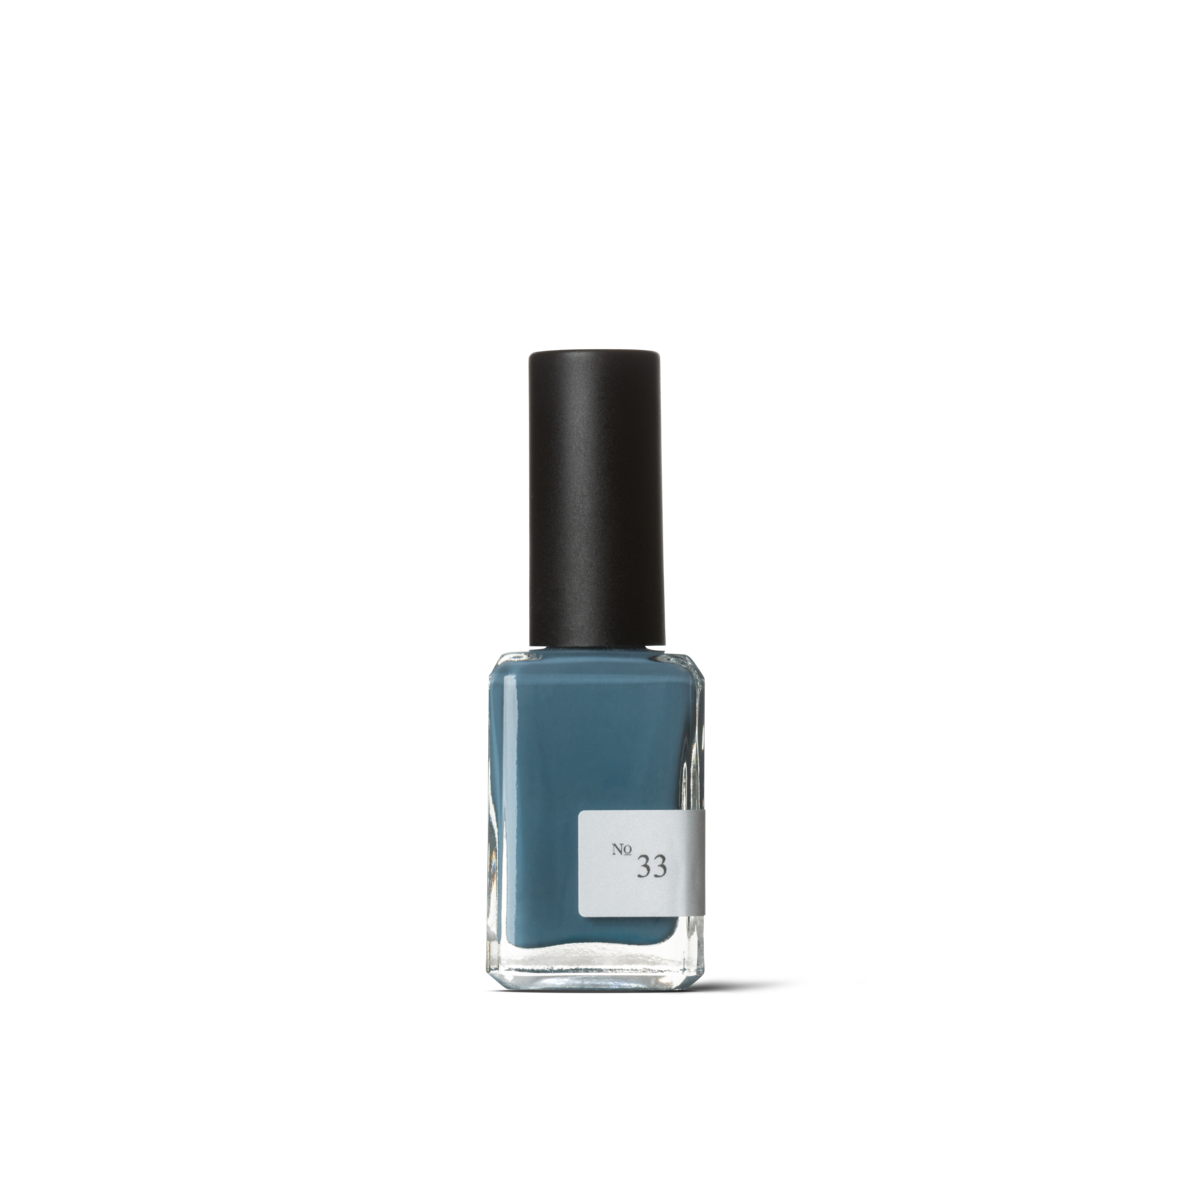 No. 33 Steel Blue Nail Polish